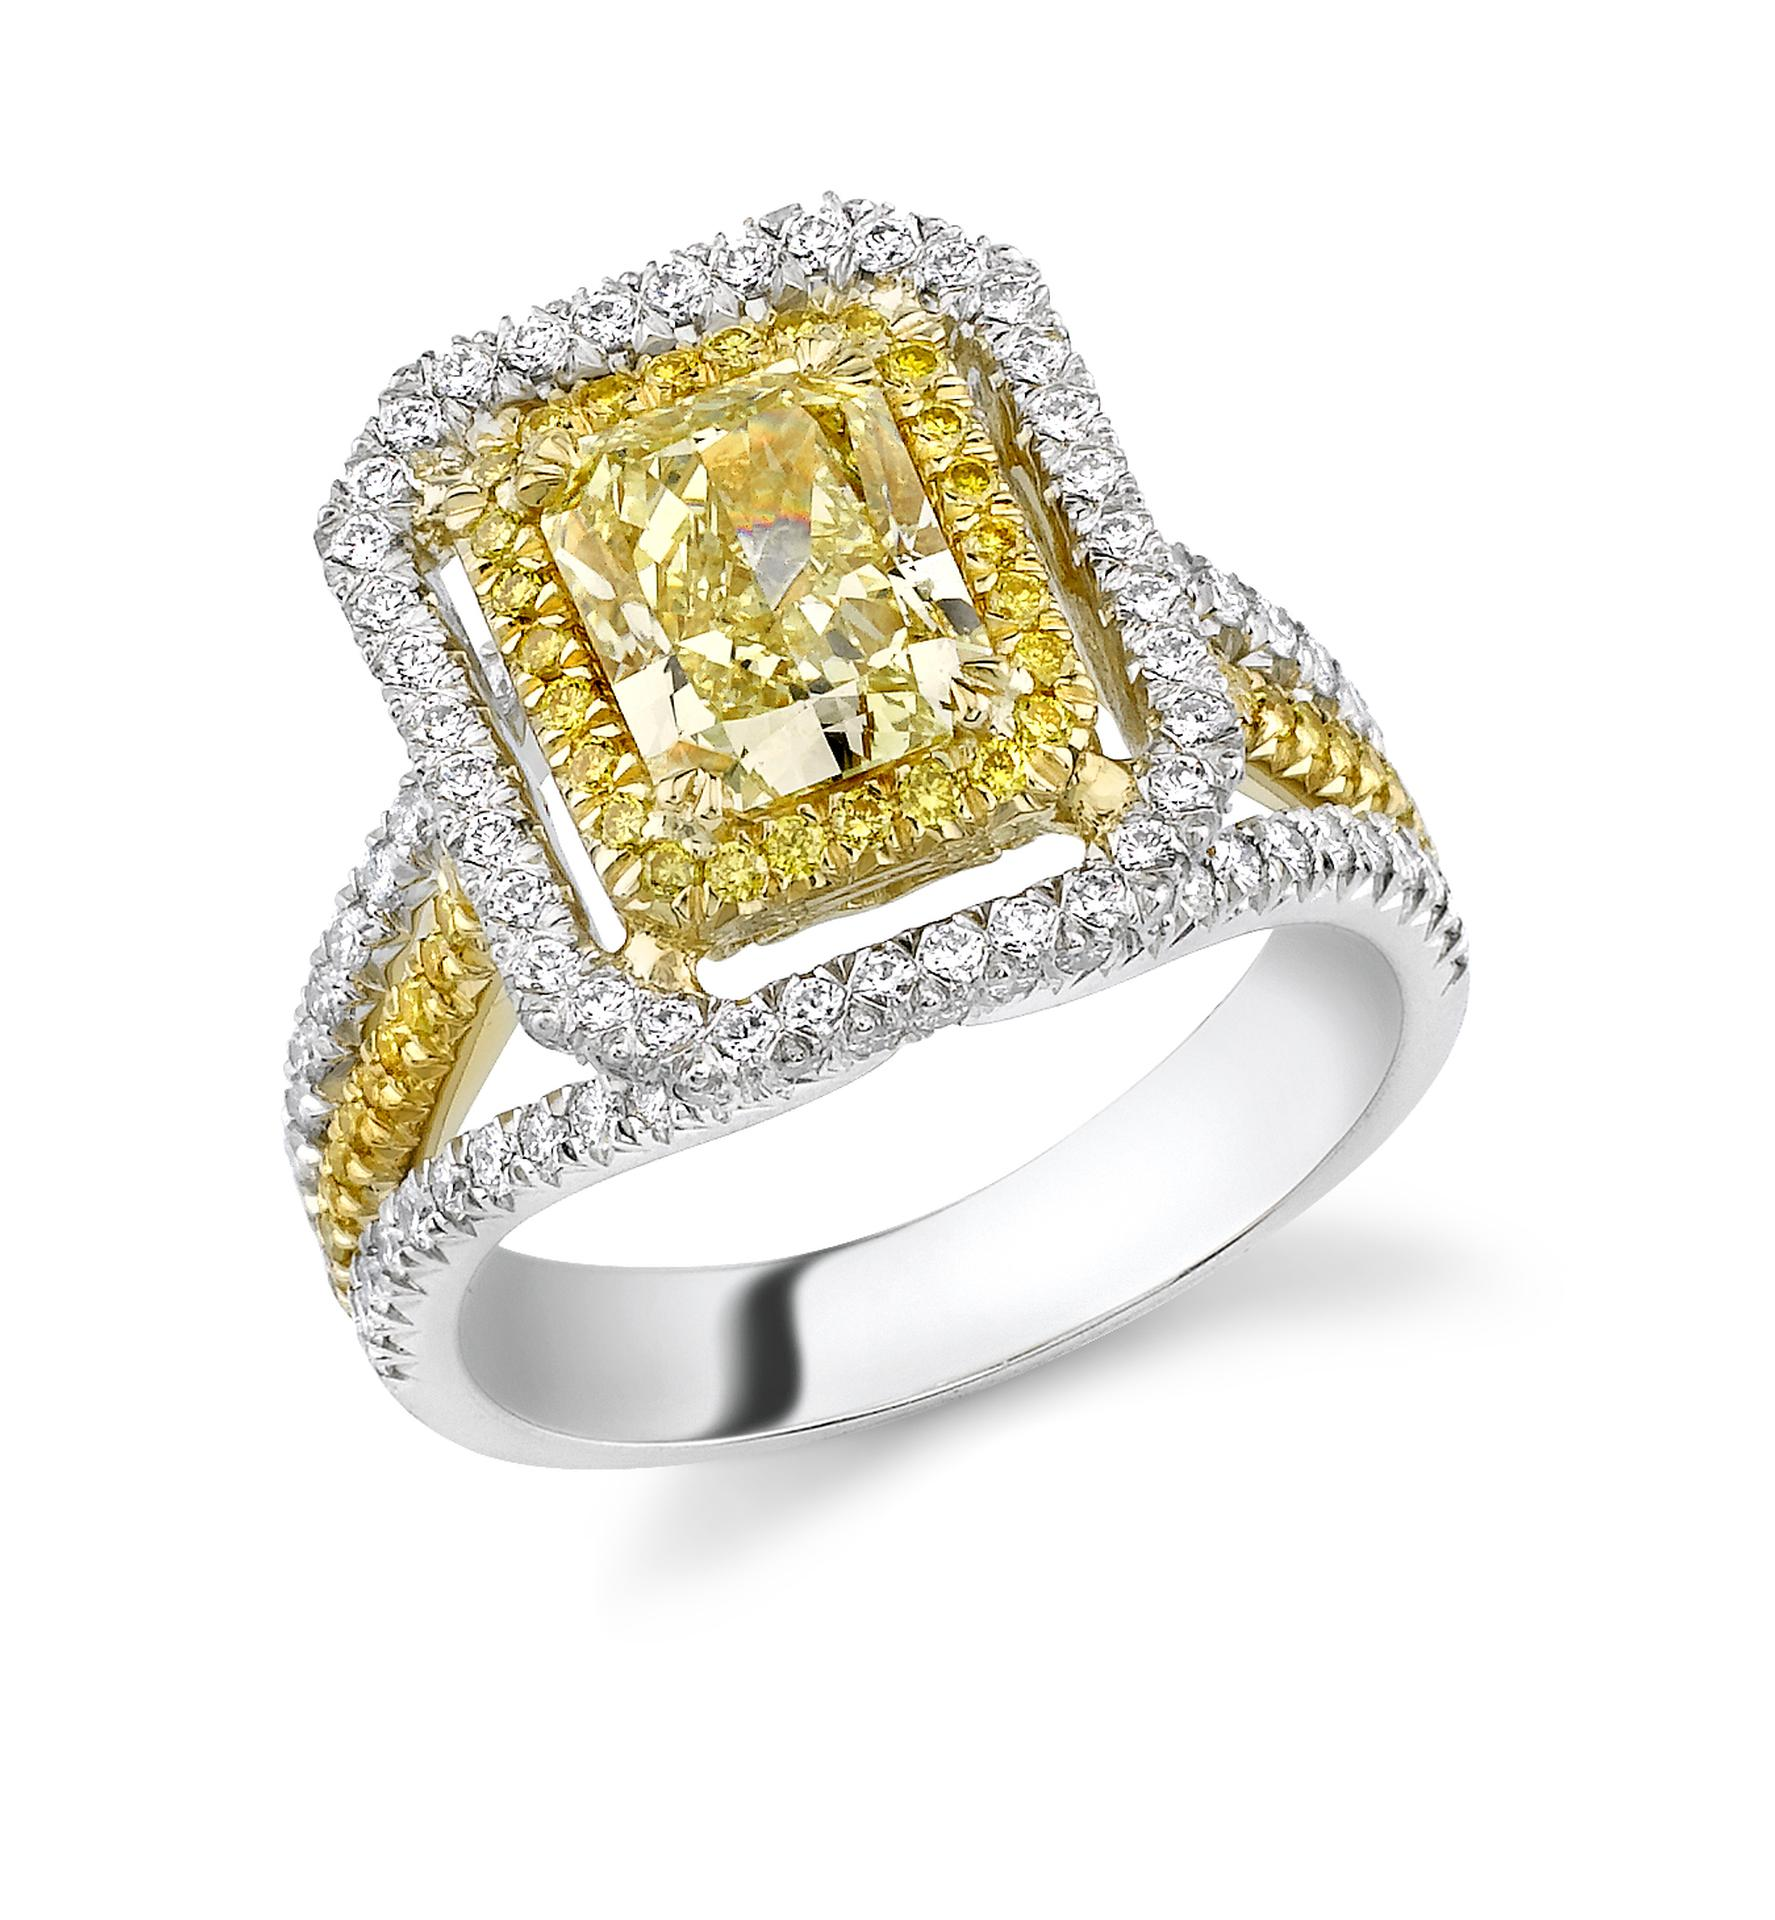 Ari Diamonds Full Service Utah Jewelers